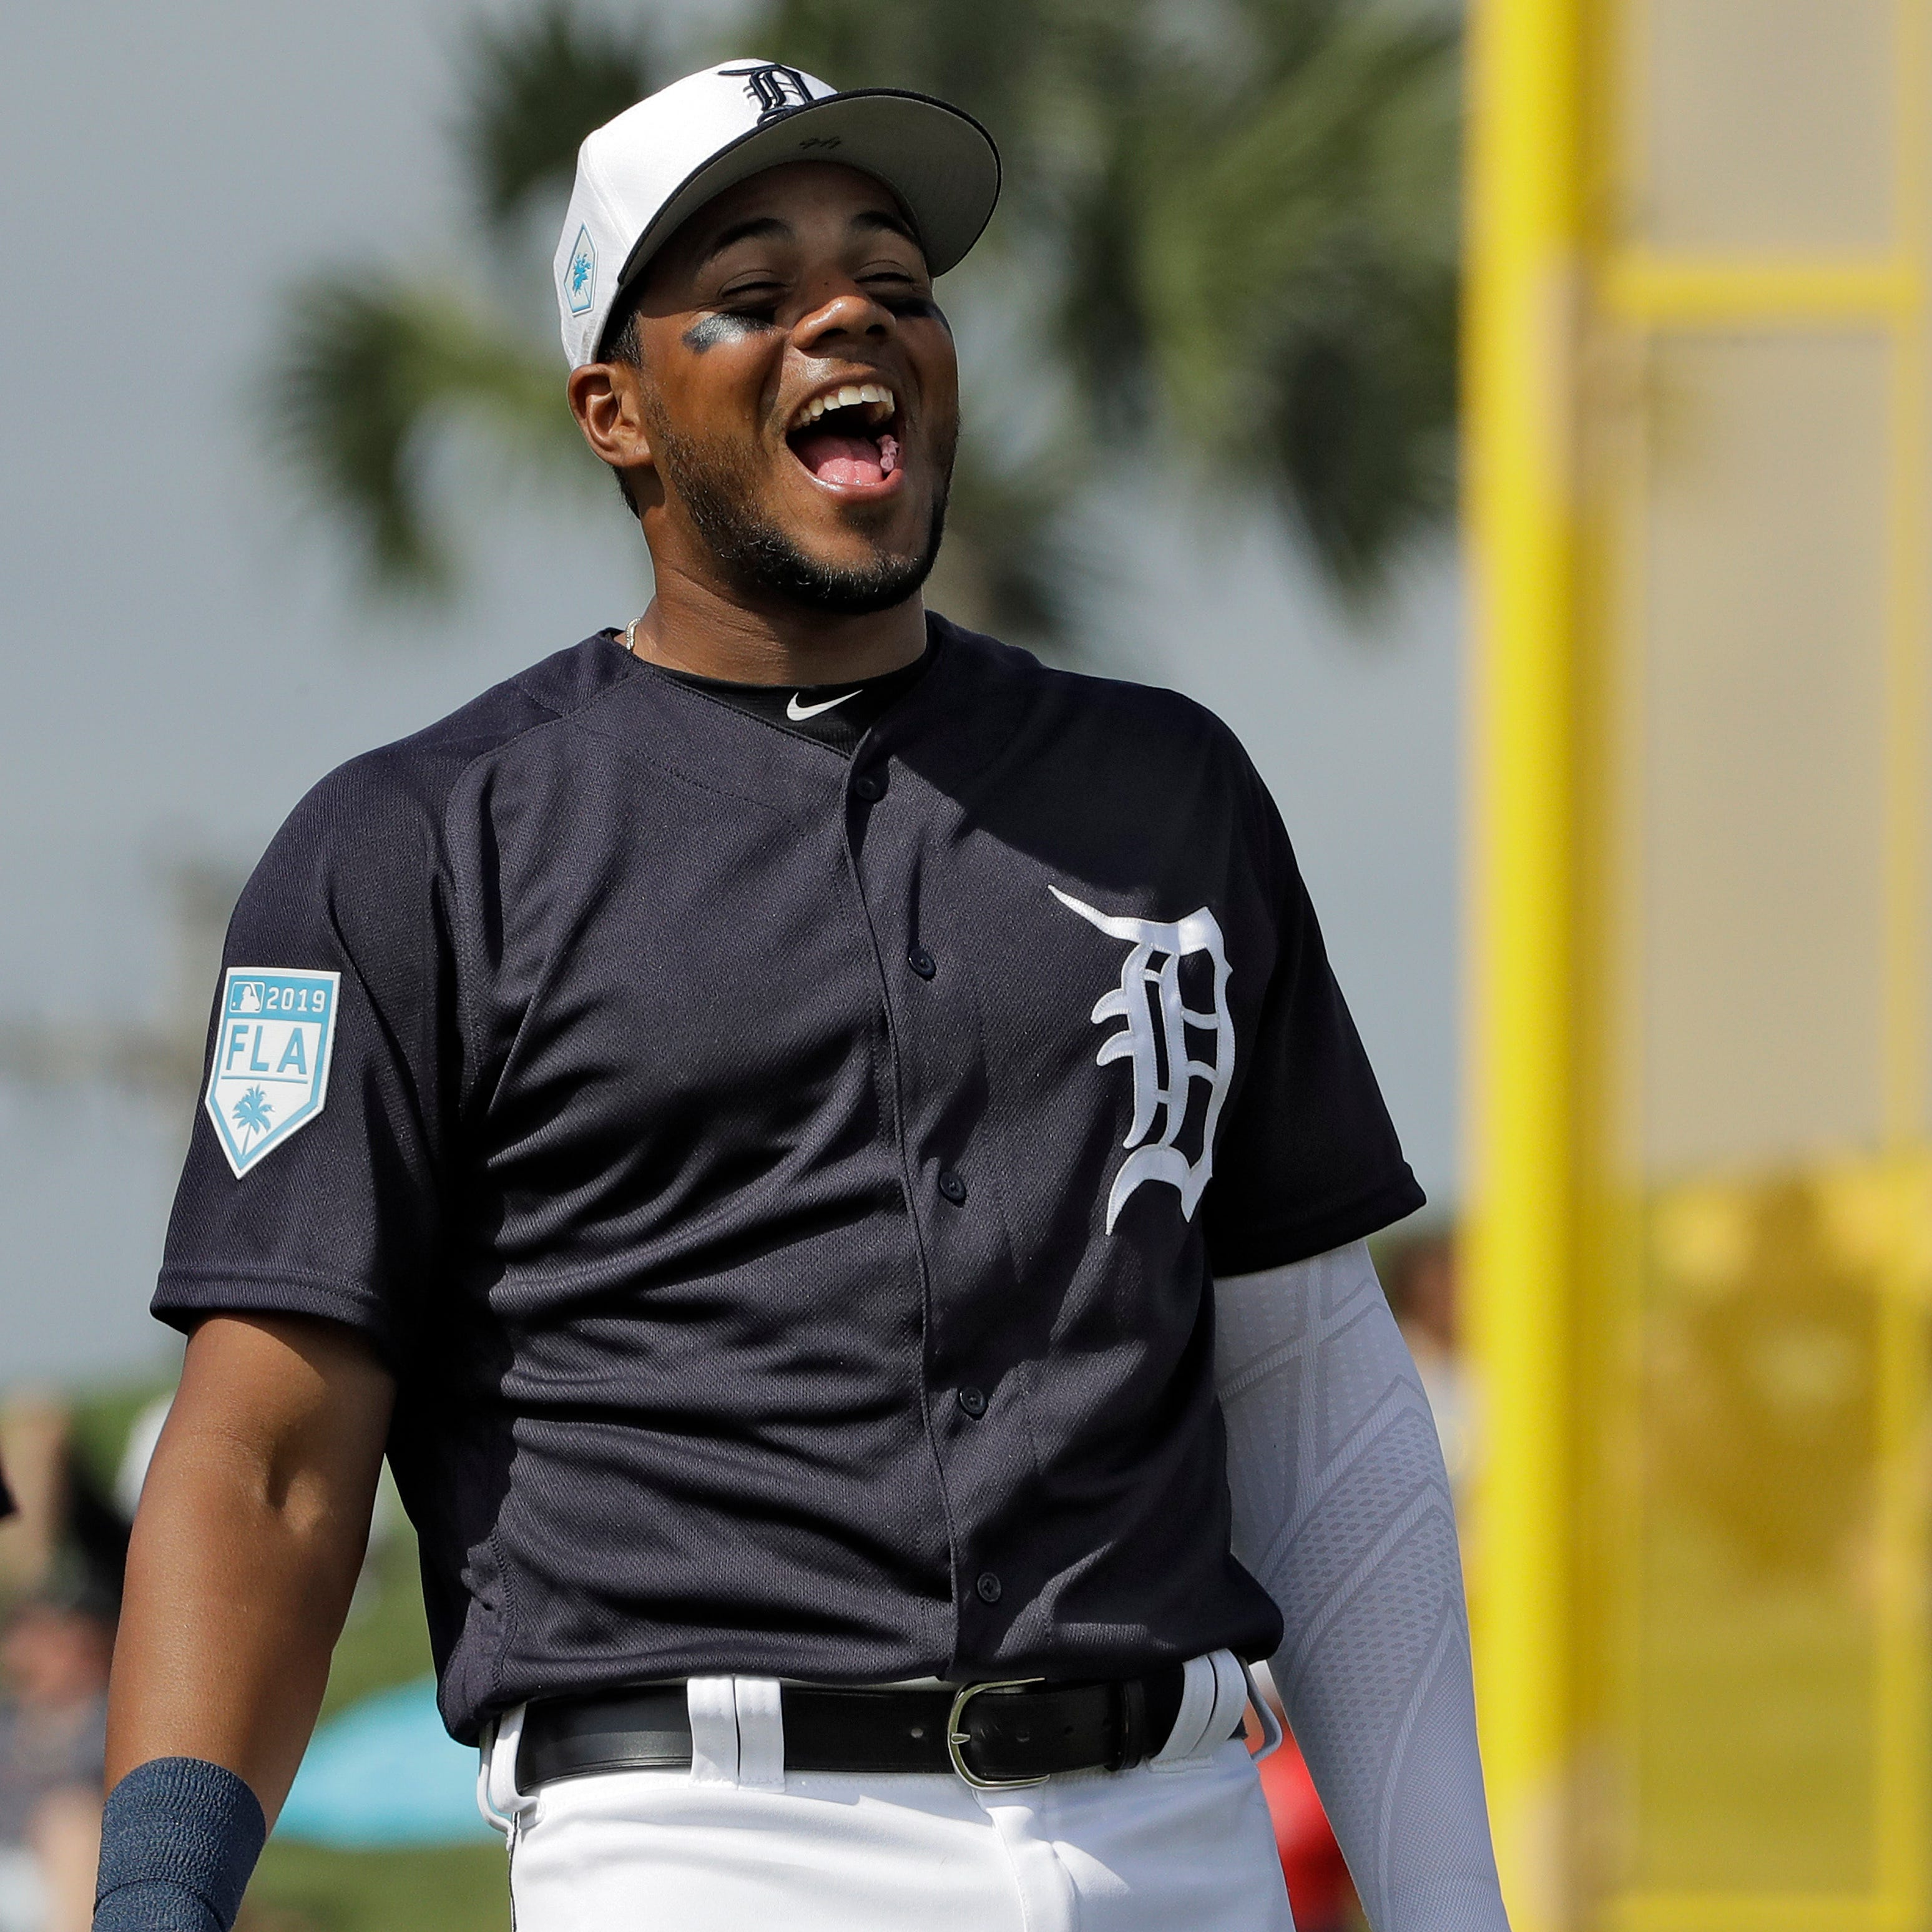 What to expect from every Detroit Tigers player this season